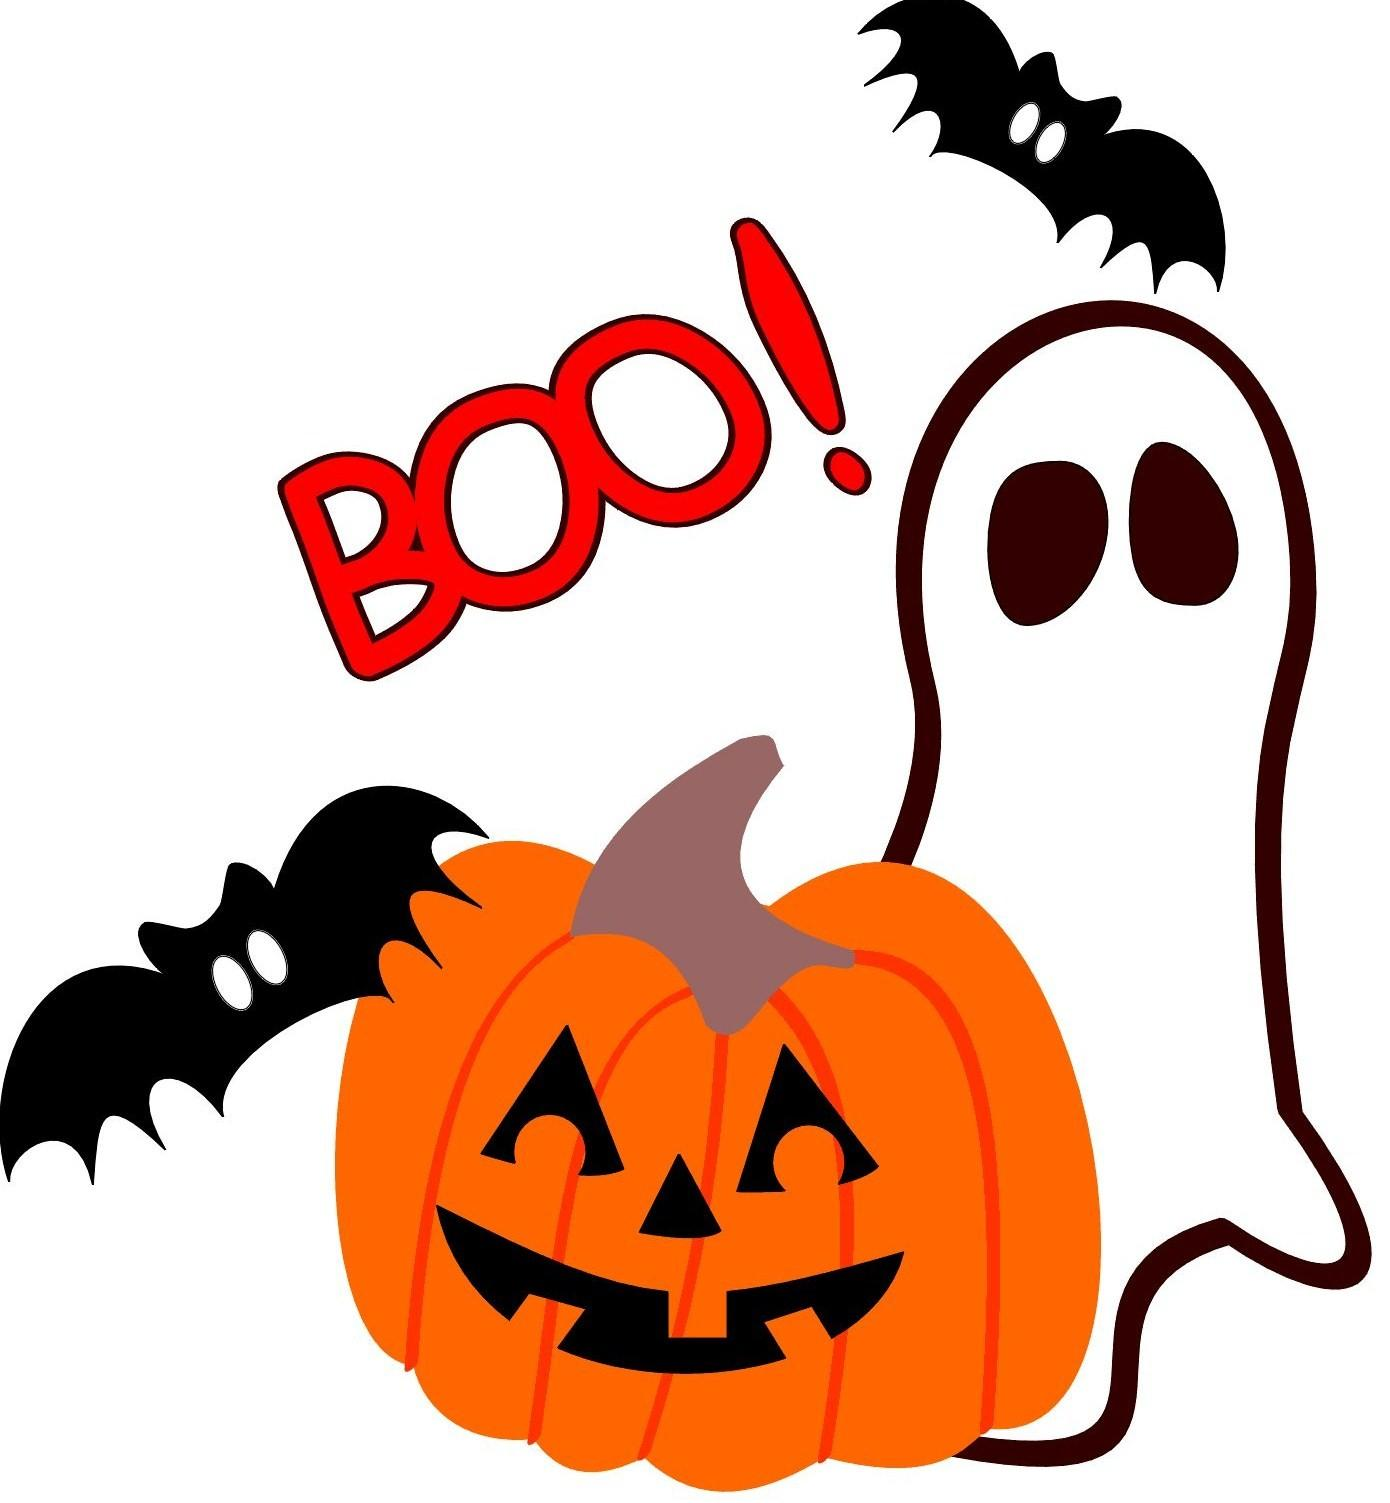 Free Halloween Cute Halloween Clipart Free Clipart Images.